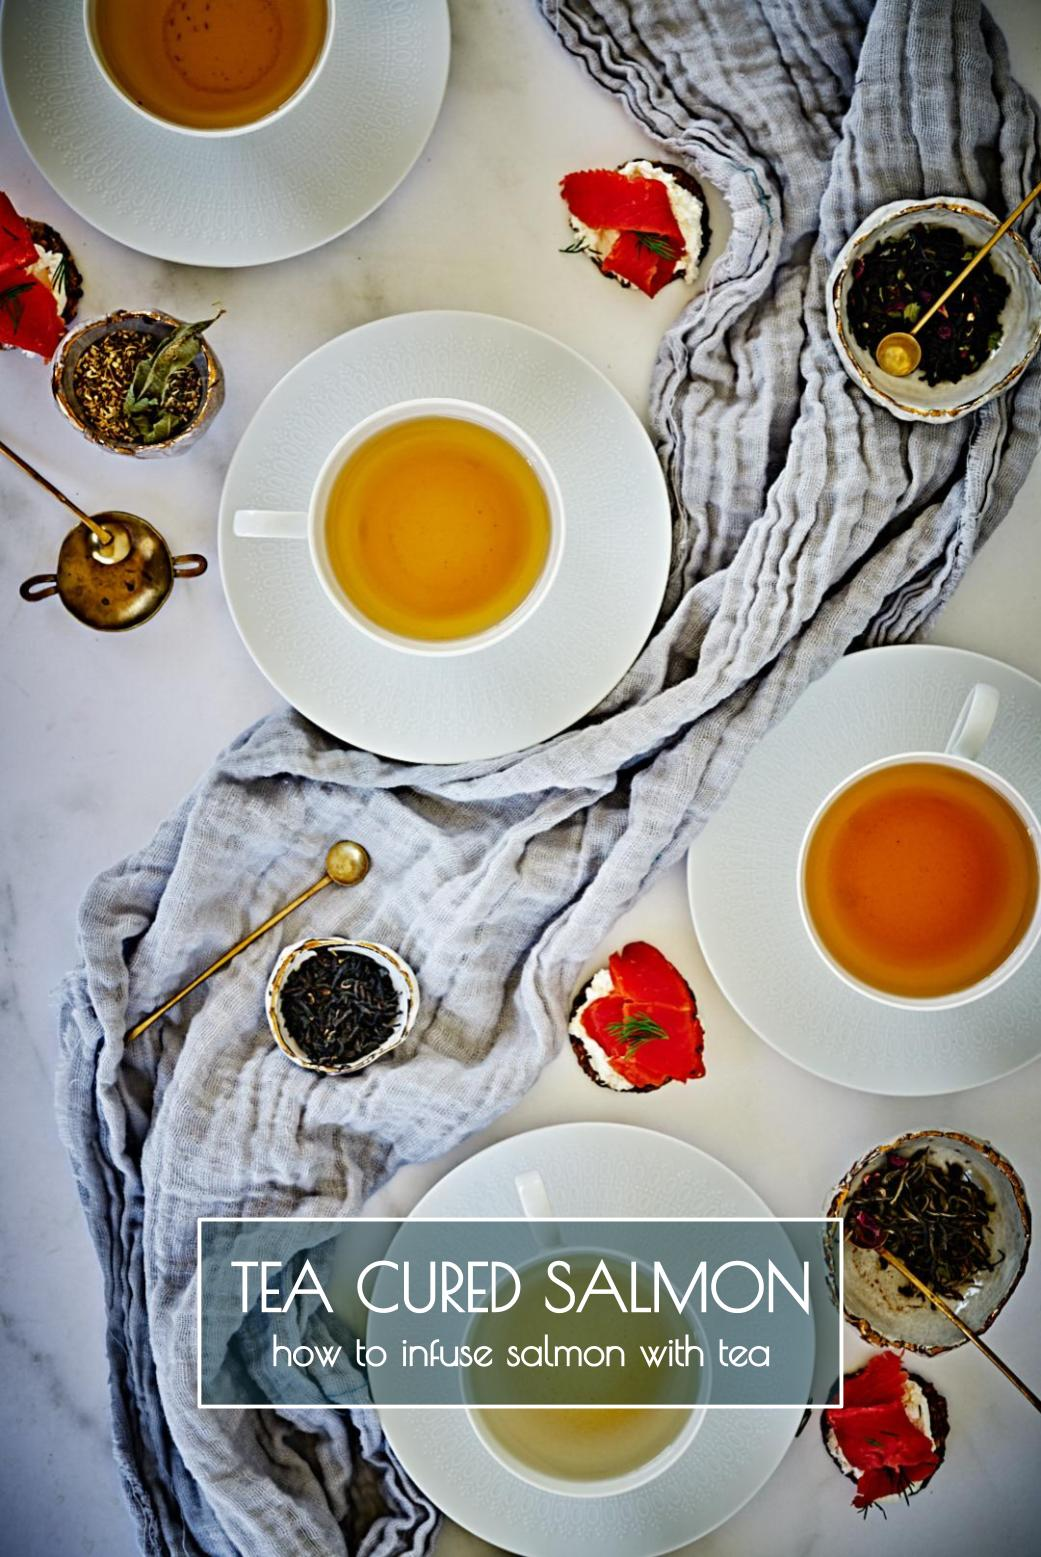 Tea Cured Salmon - How to infuse salmon with tea flavors | Step by step instructions included...